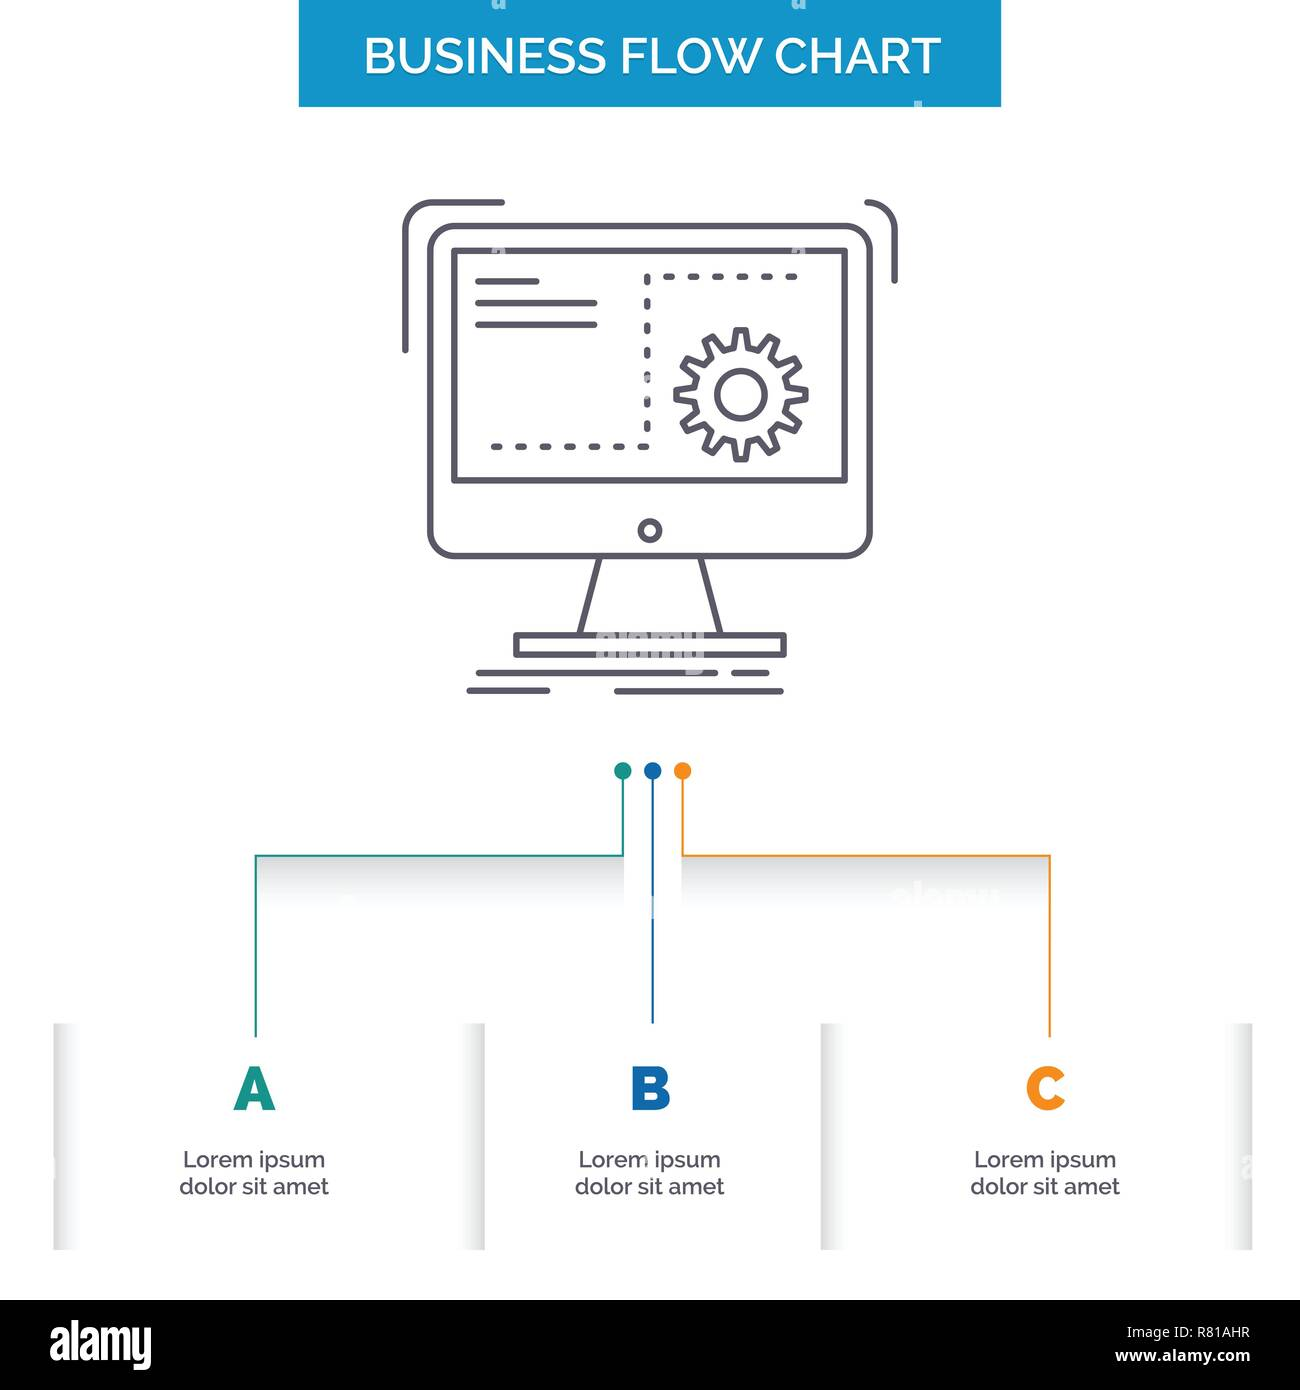 hight resolution of command computer function process progress business flow chart design with 3 steps line icon for presentation background template place for text